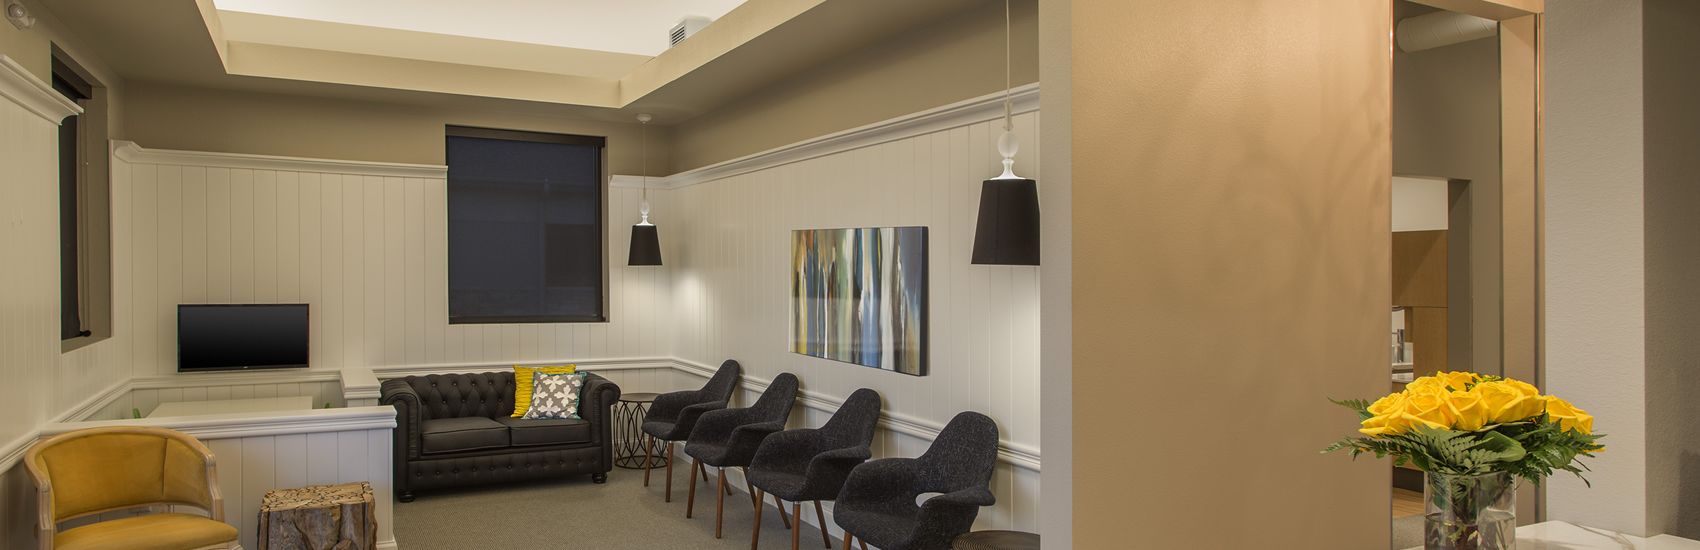 Eaton Family Dental Office Interior